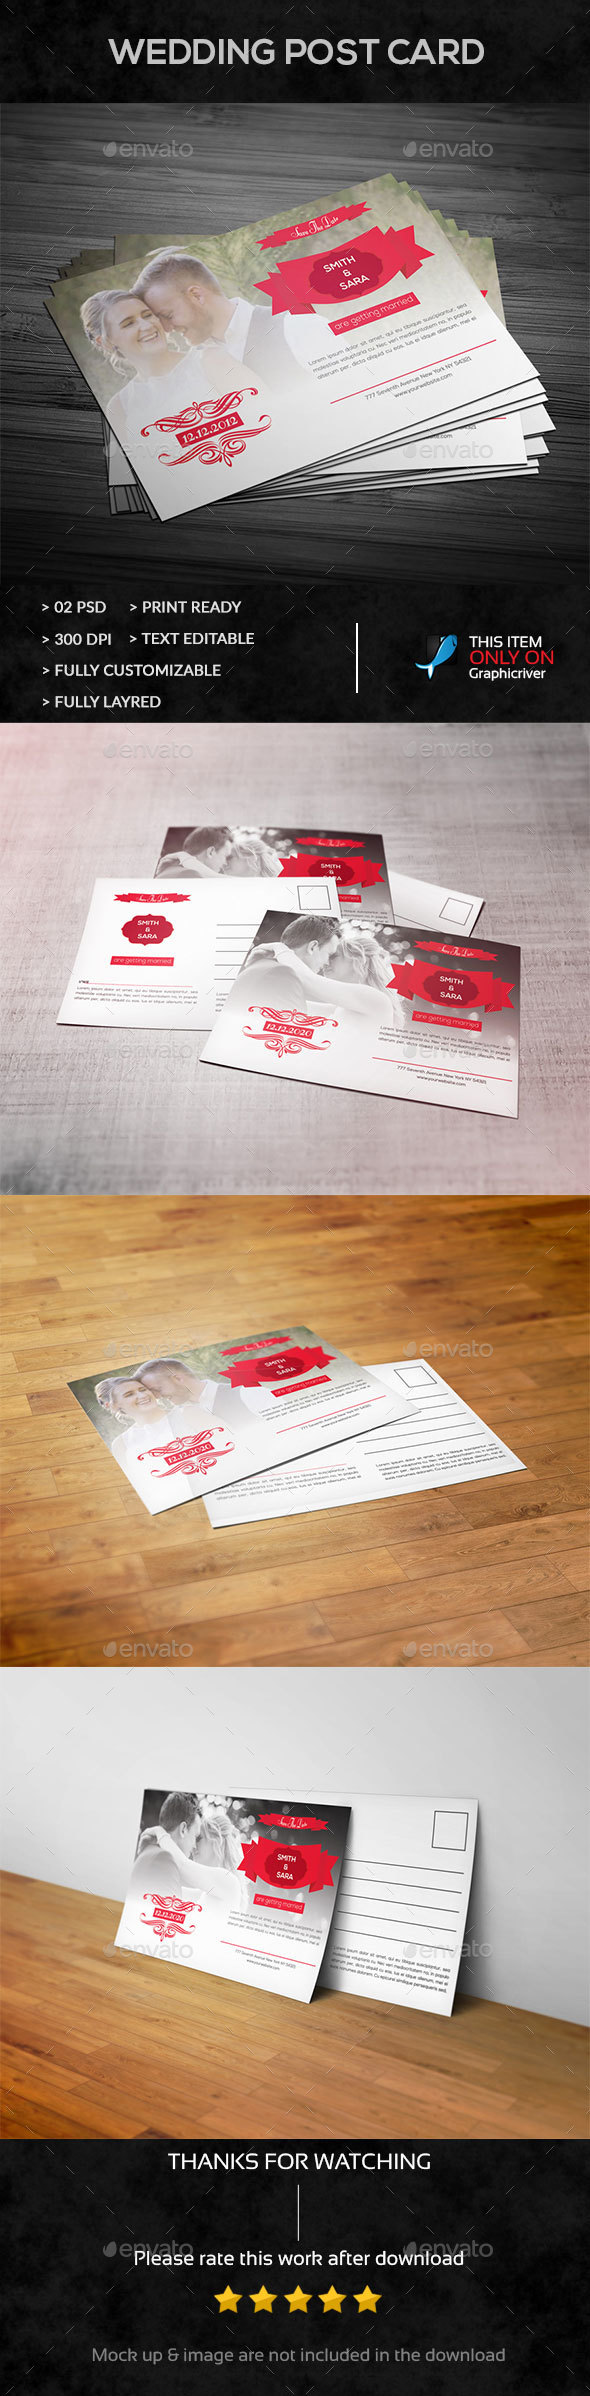 Wedding Post Card - Cards & Invites Print Templates